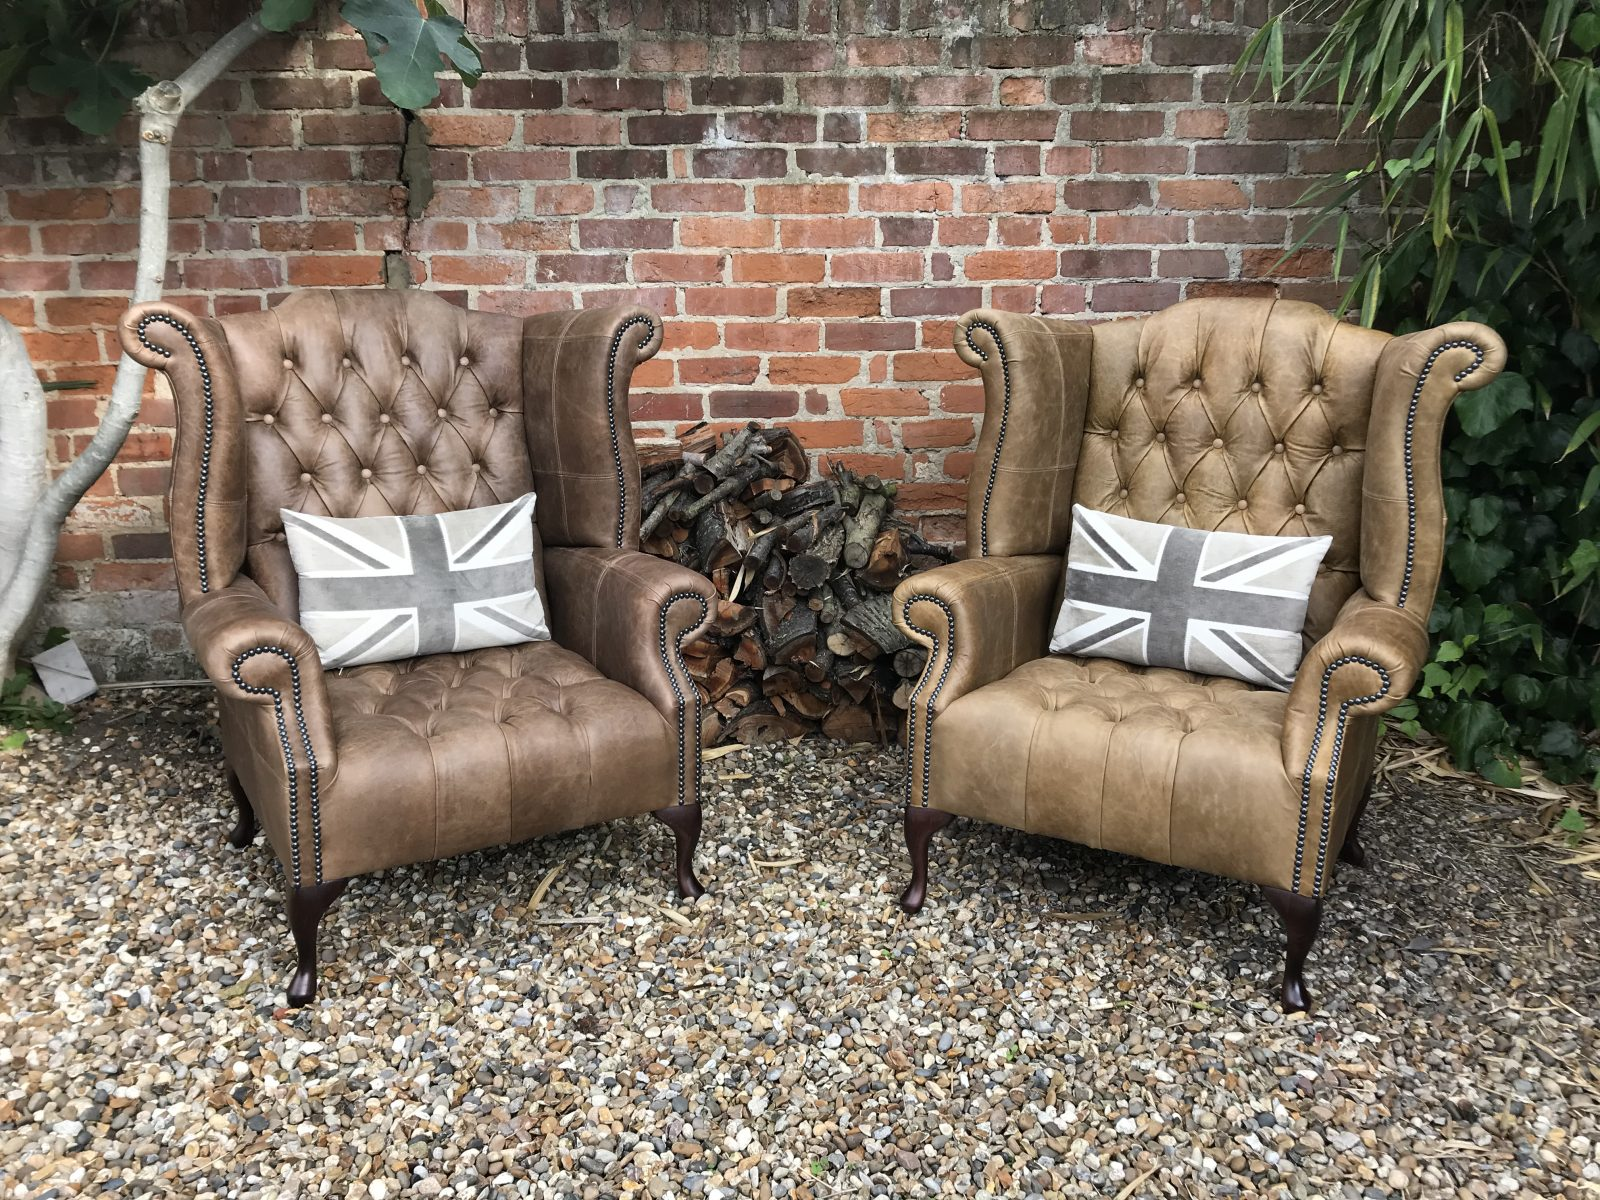 Queen Anne Wingback Chairs.